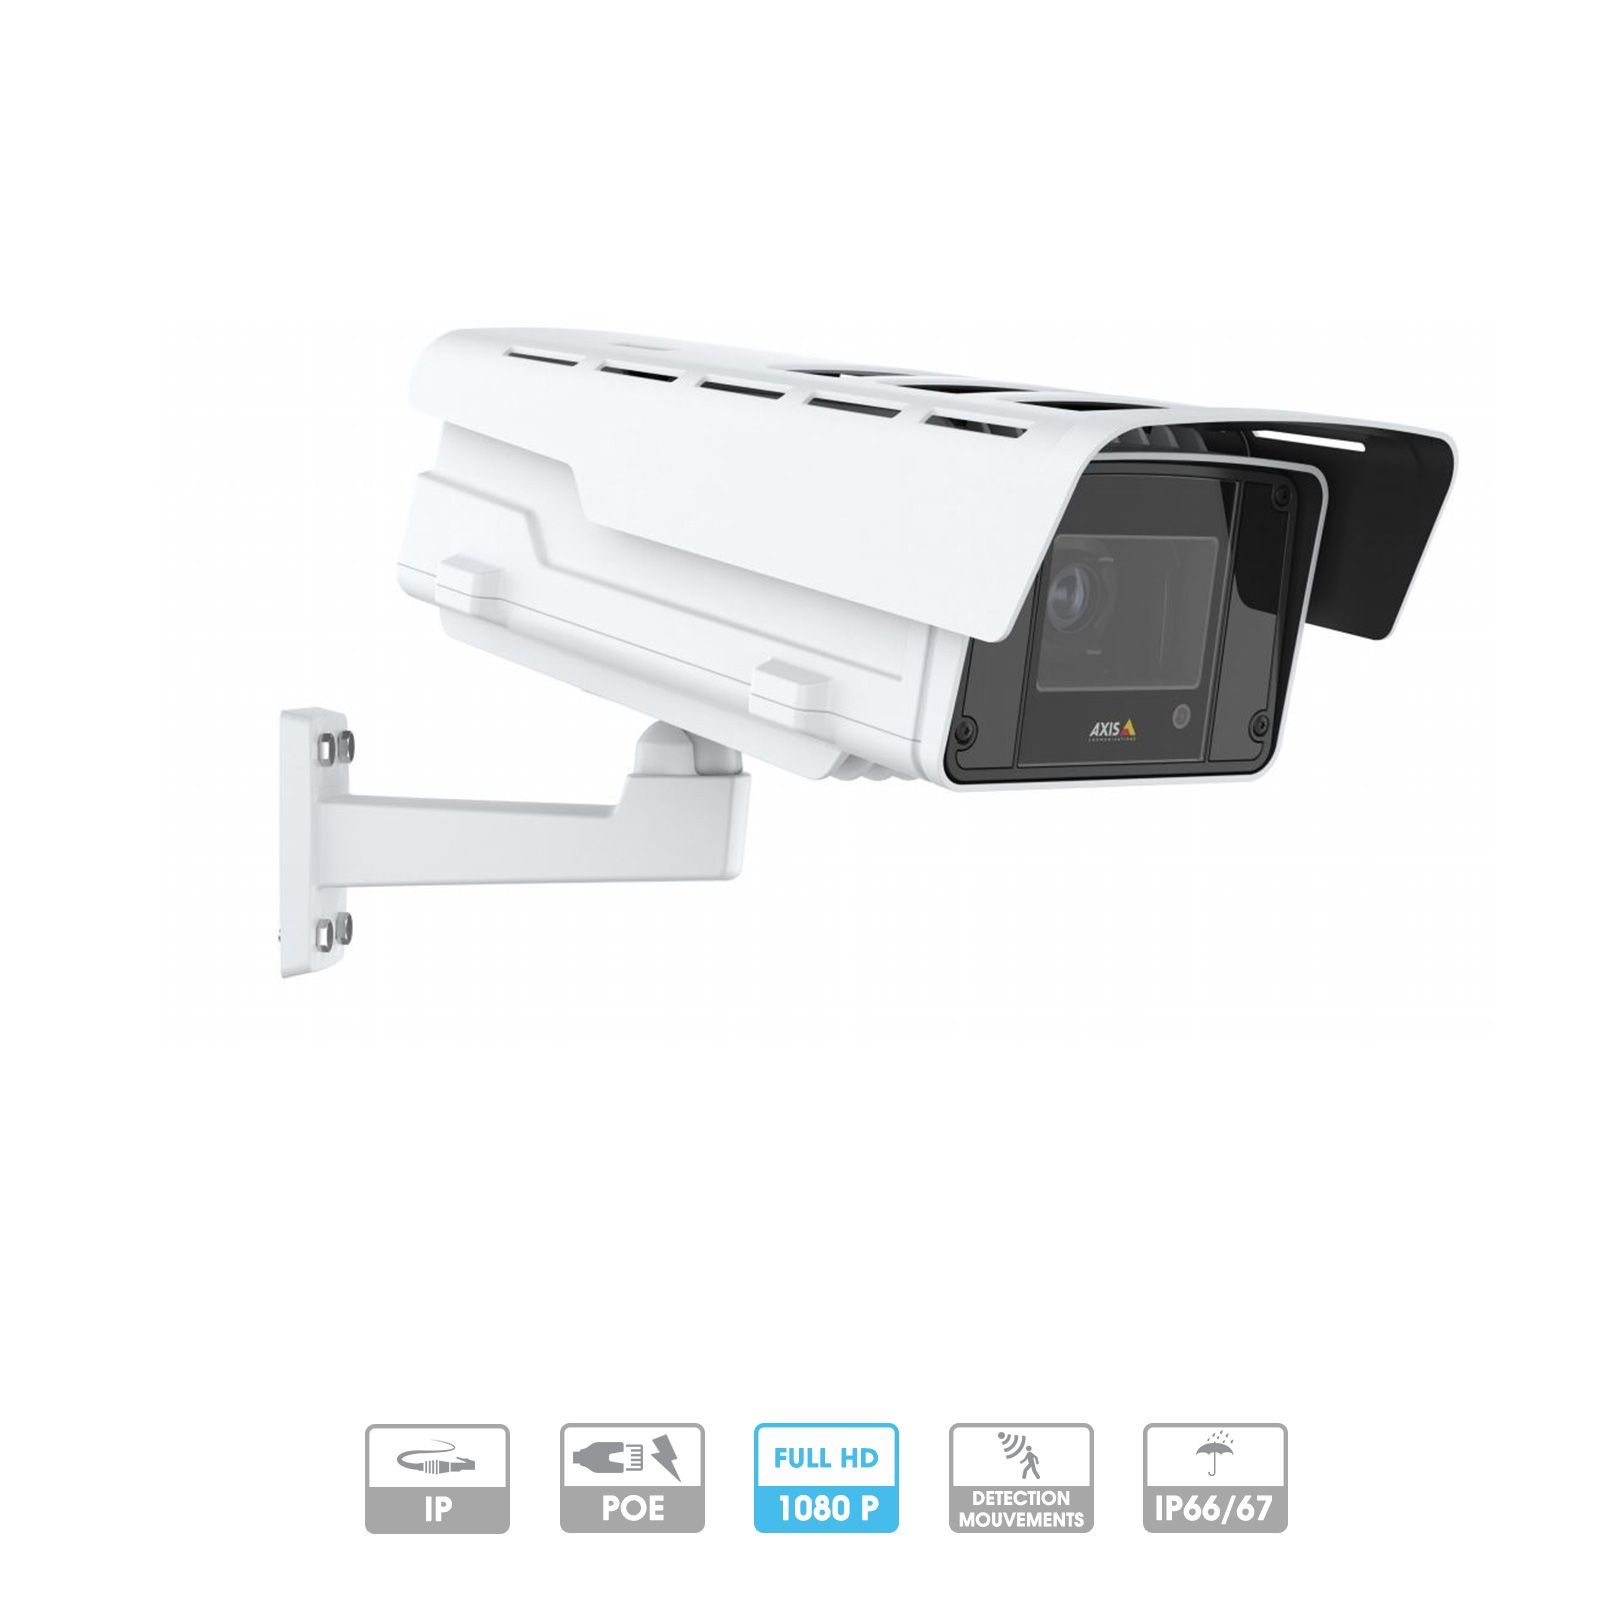 Caméra Axis Network   Q1645-LE   Tube   2 MP   PoE   100/120 IPS